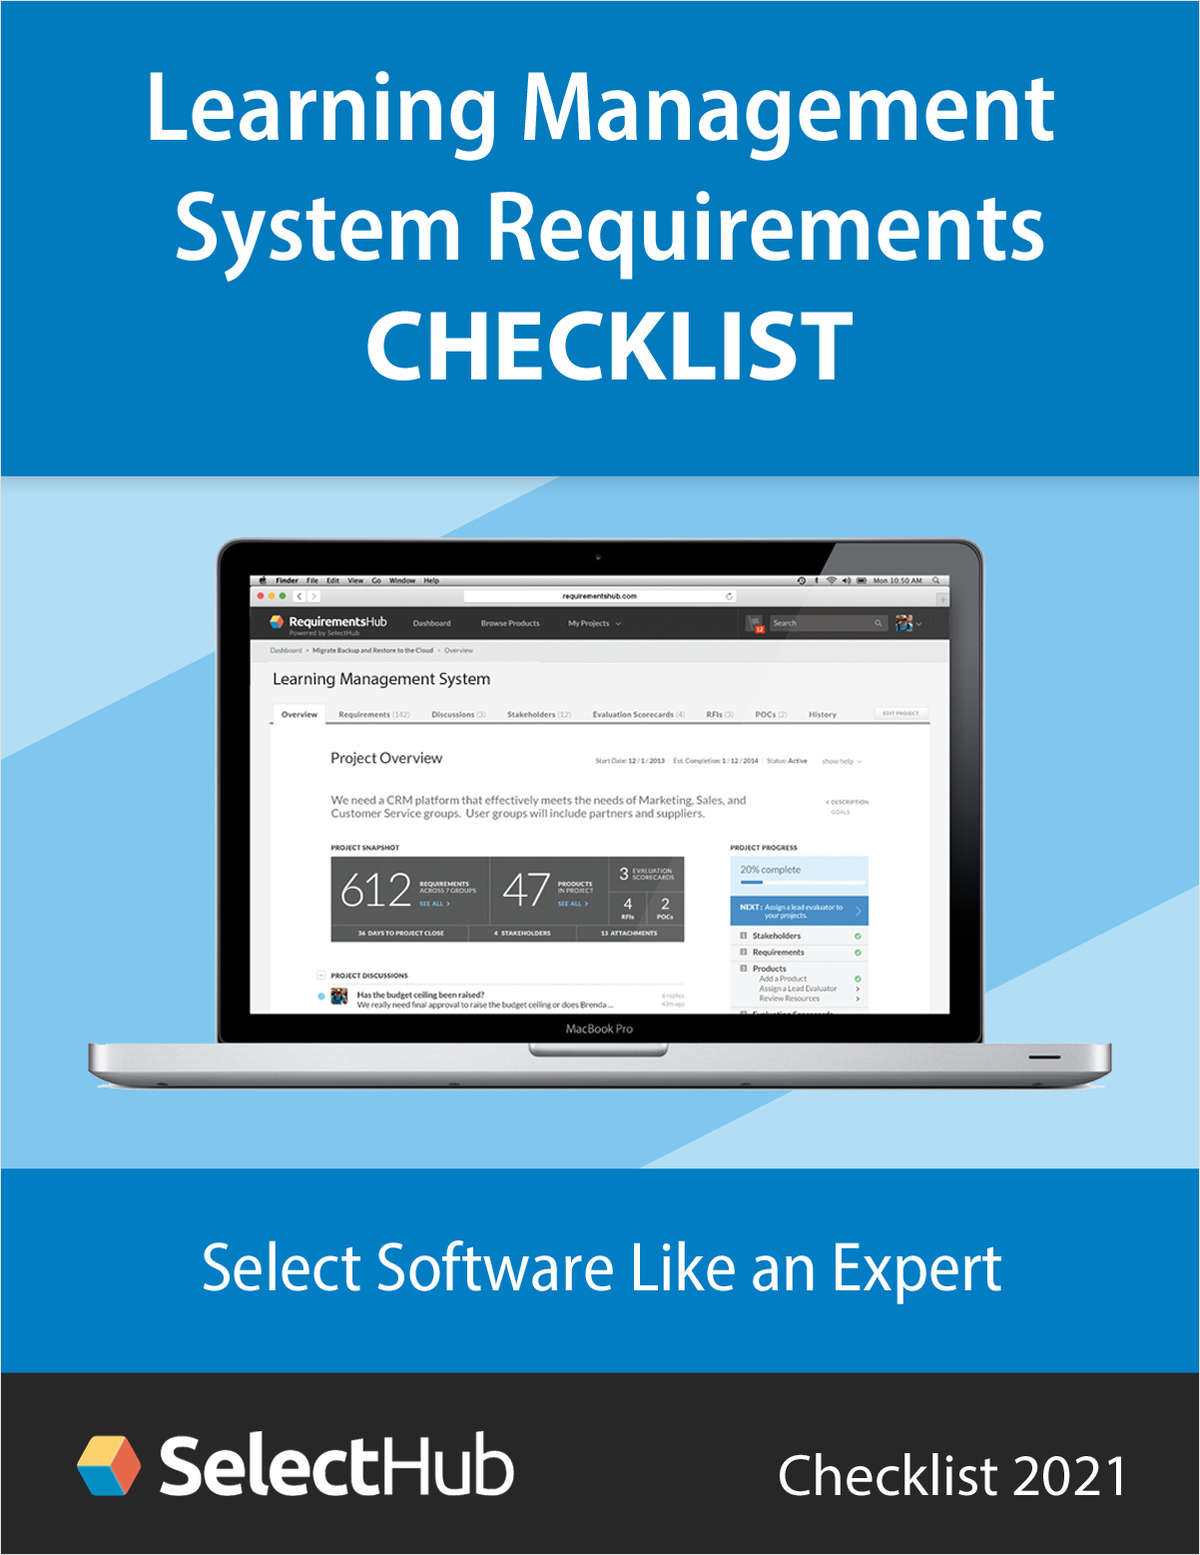 Learning Management System (LMS) Requirements Checklist for 2021